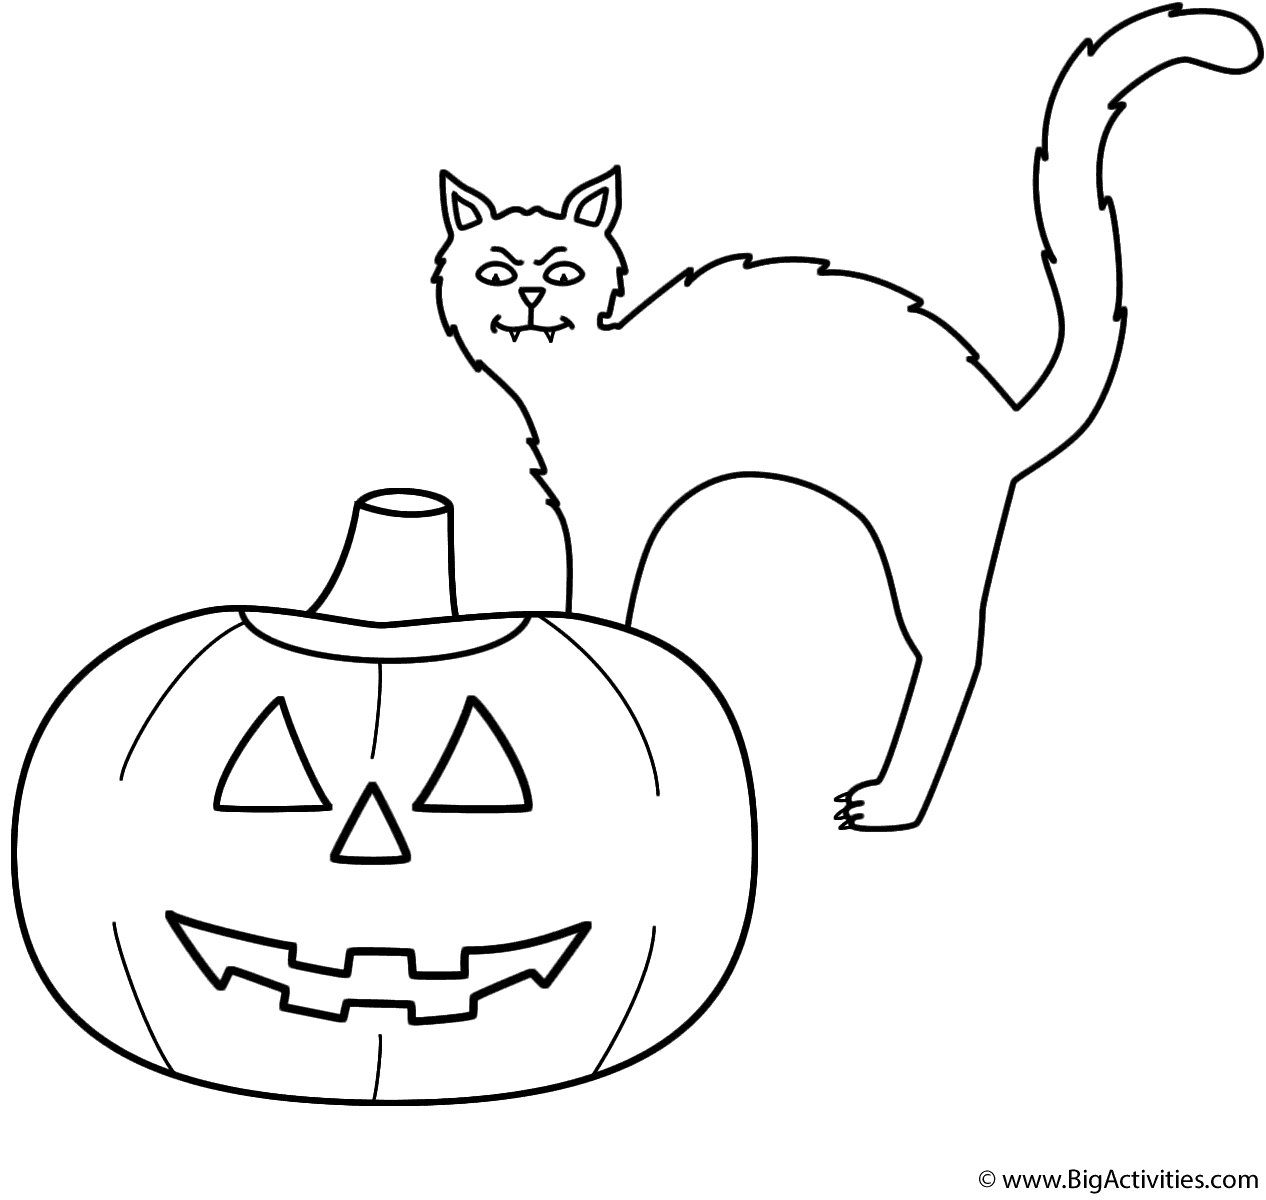 halloween black cat coloring pages halloween coloring pages halloween cat coloring pages cat coloring pages halloween black